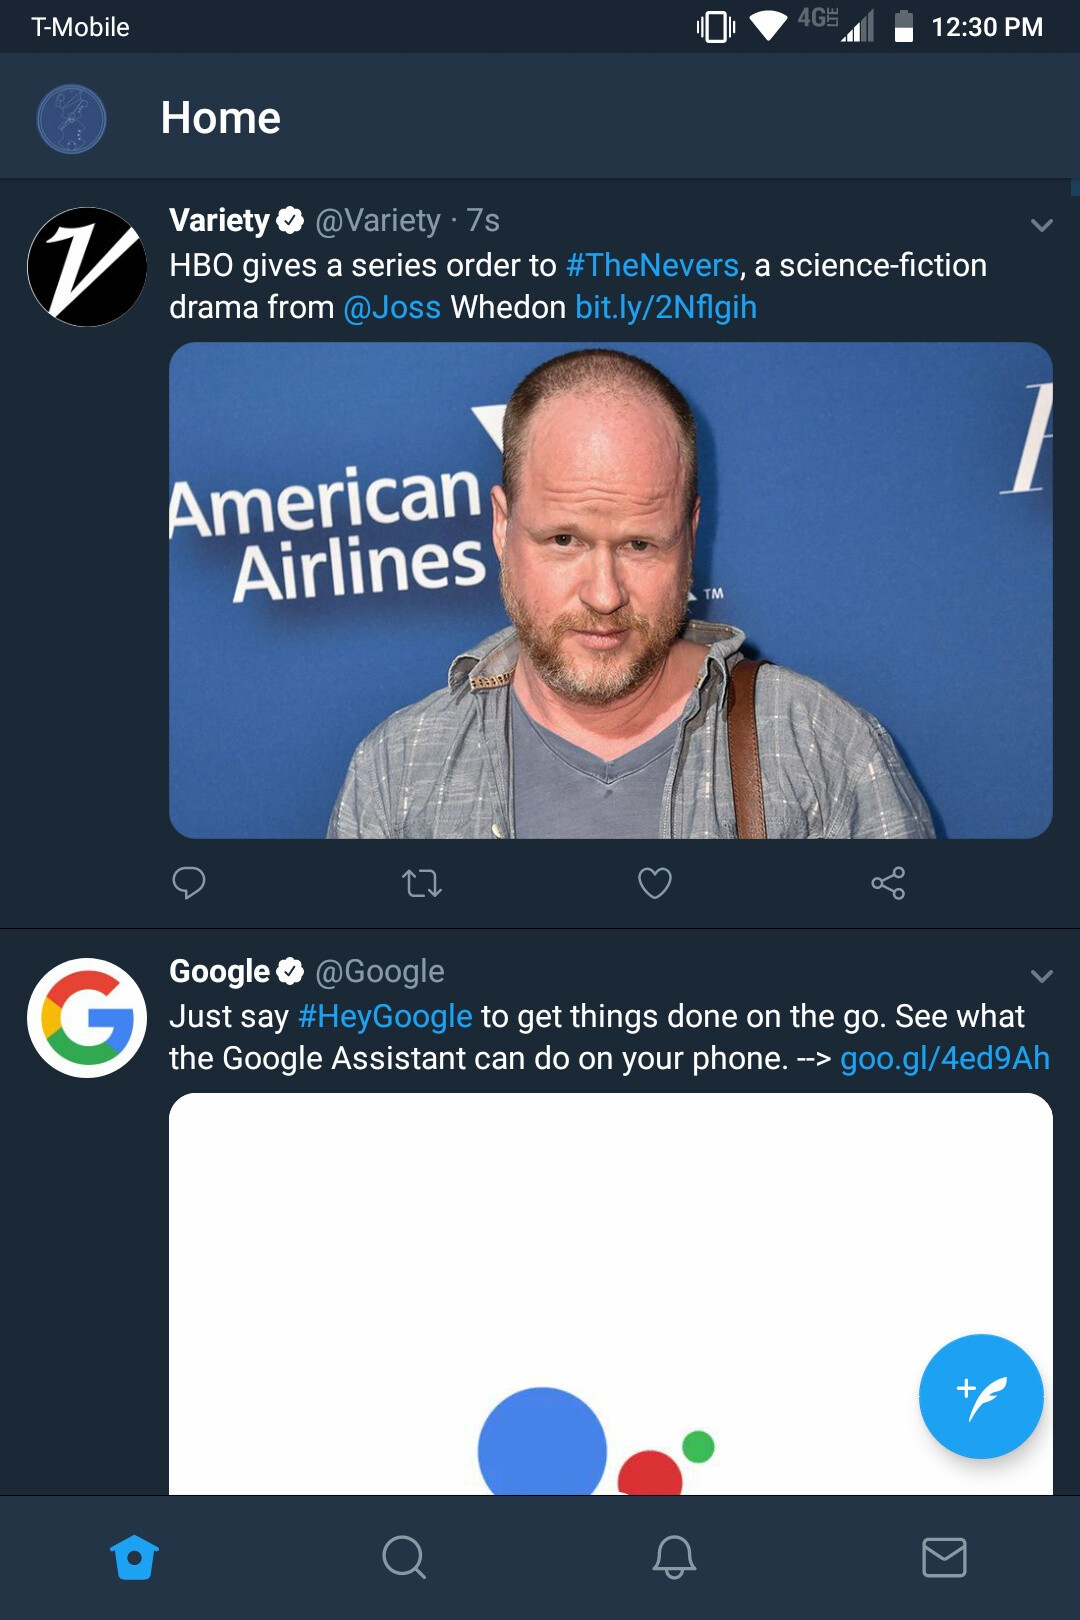 Twitter launches new bottom navigation bar on Twitter for Android screenshot 20180713 123024